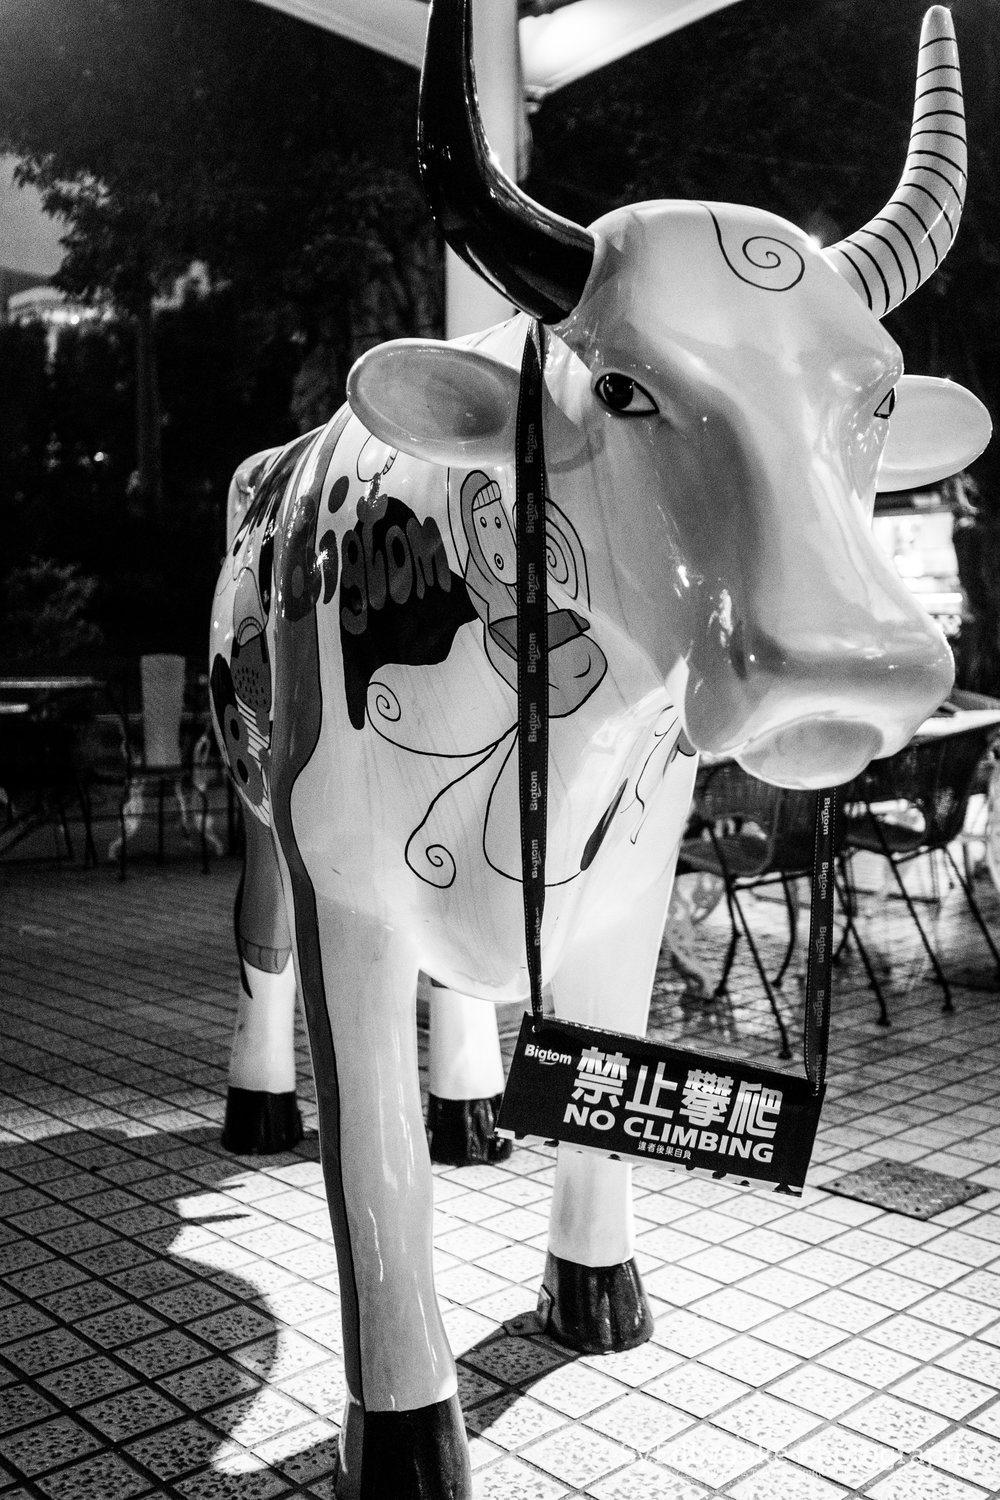 the resident cow at Tom&Toms. f1.8, ISO 1600, 1/25, 35mm